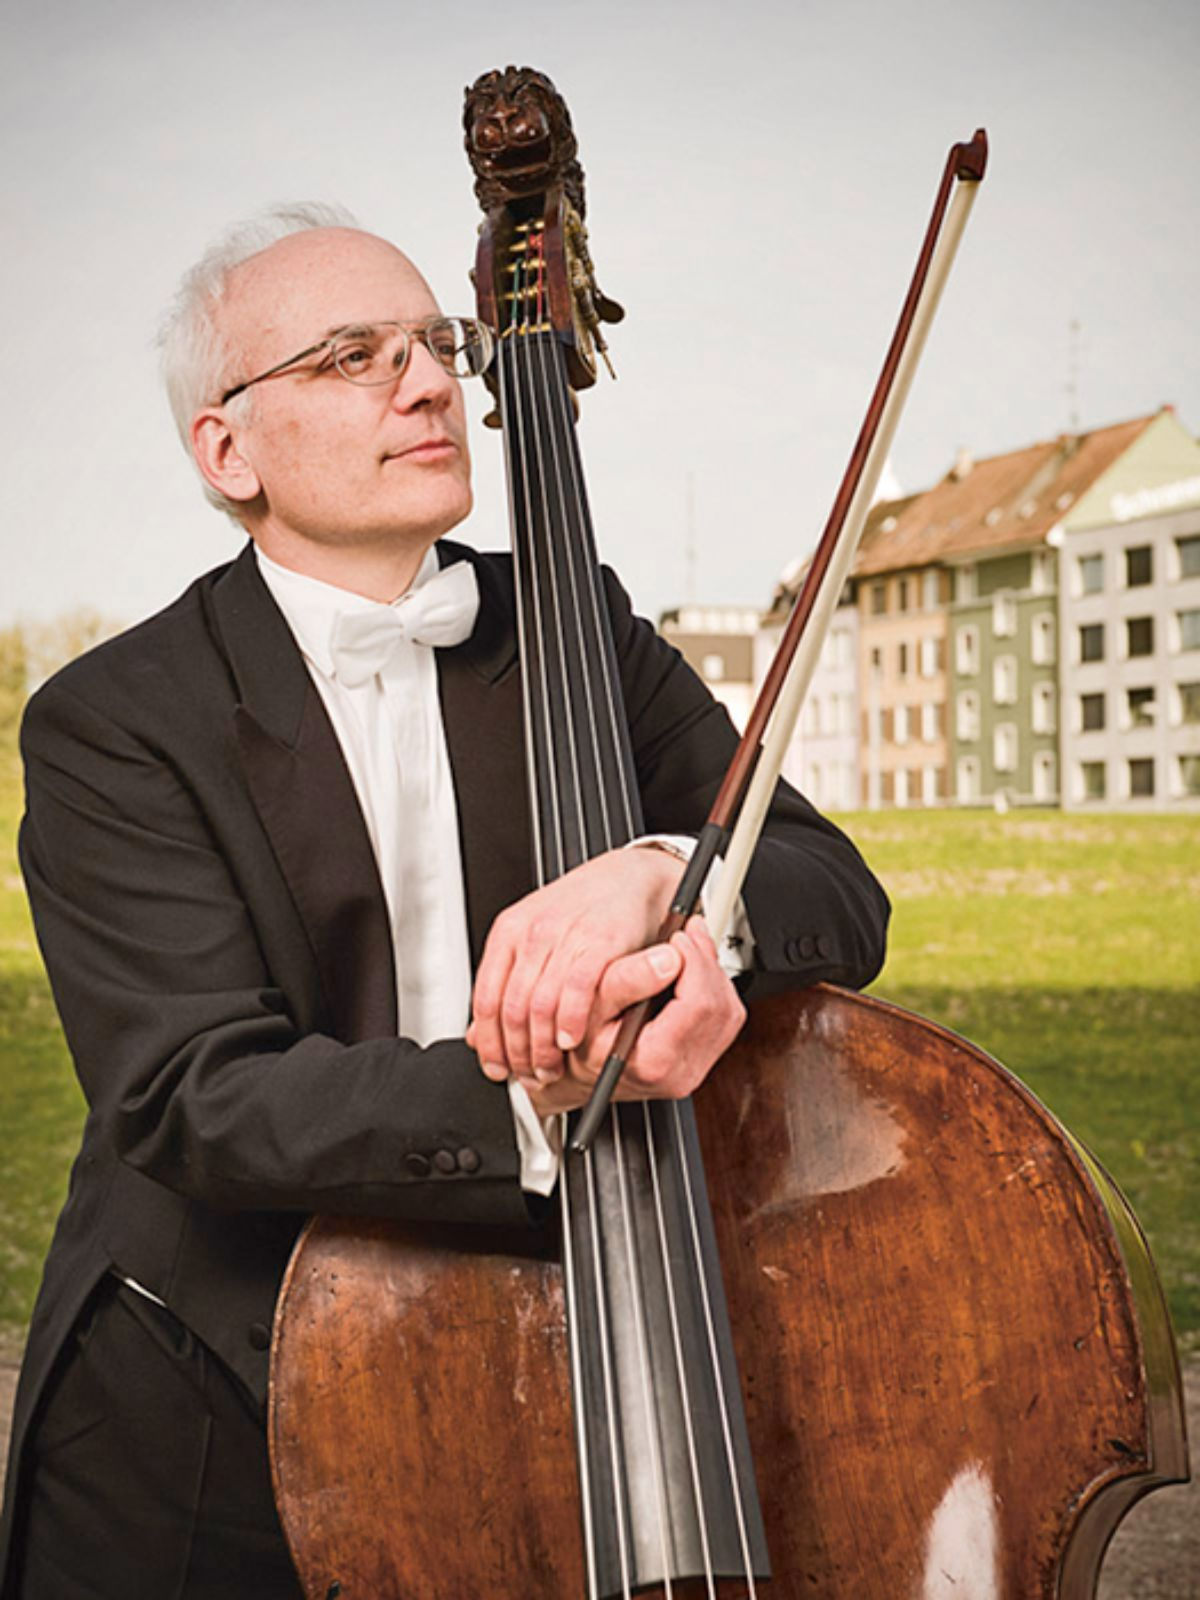 David LeClair, Kontrabass